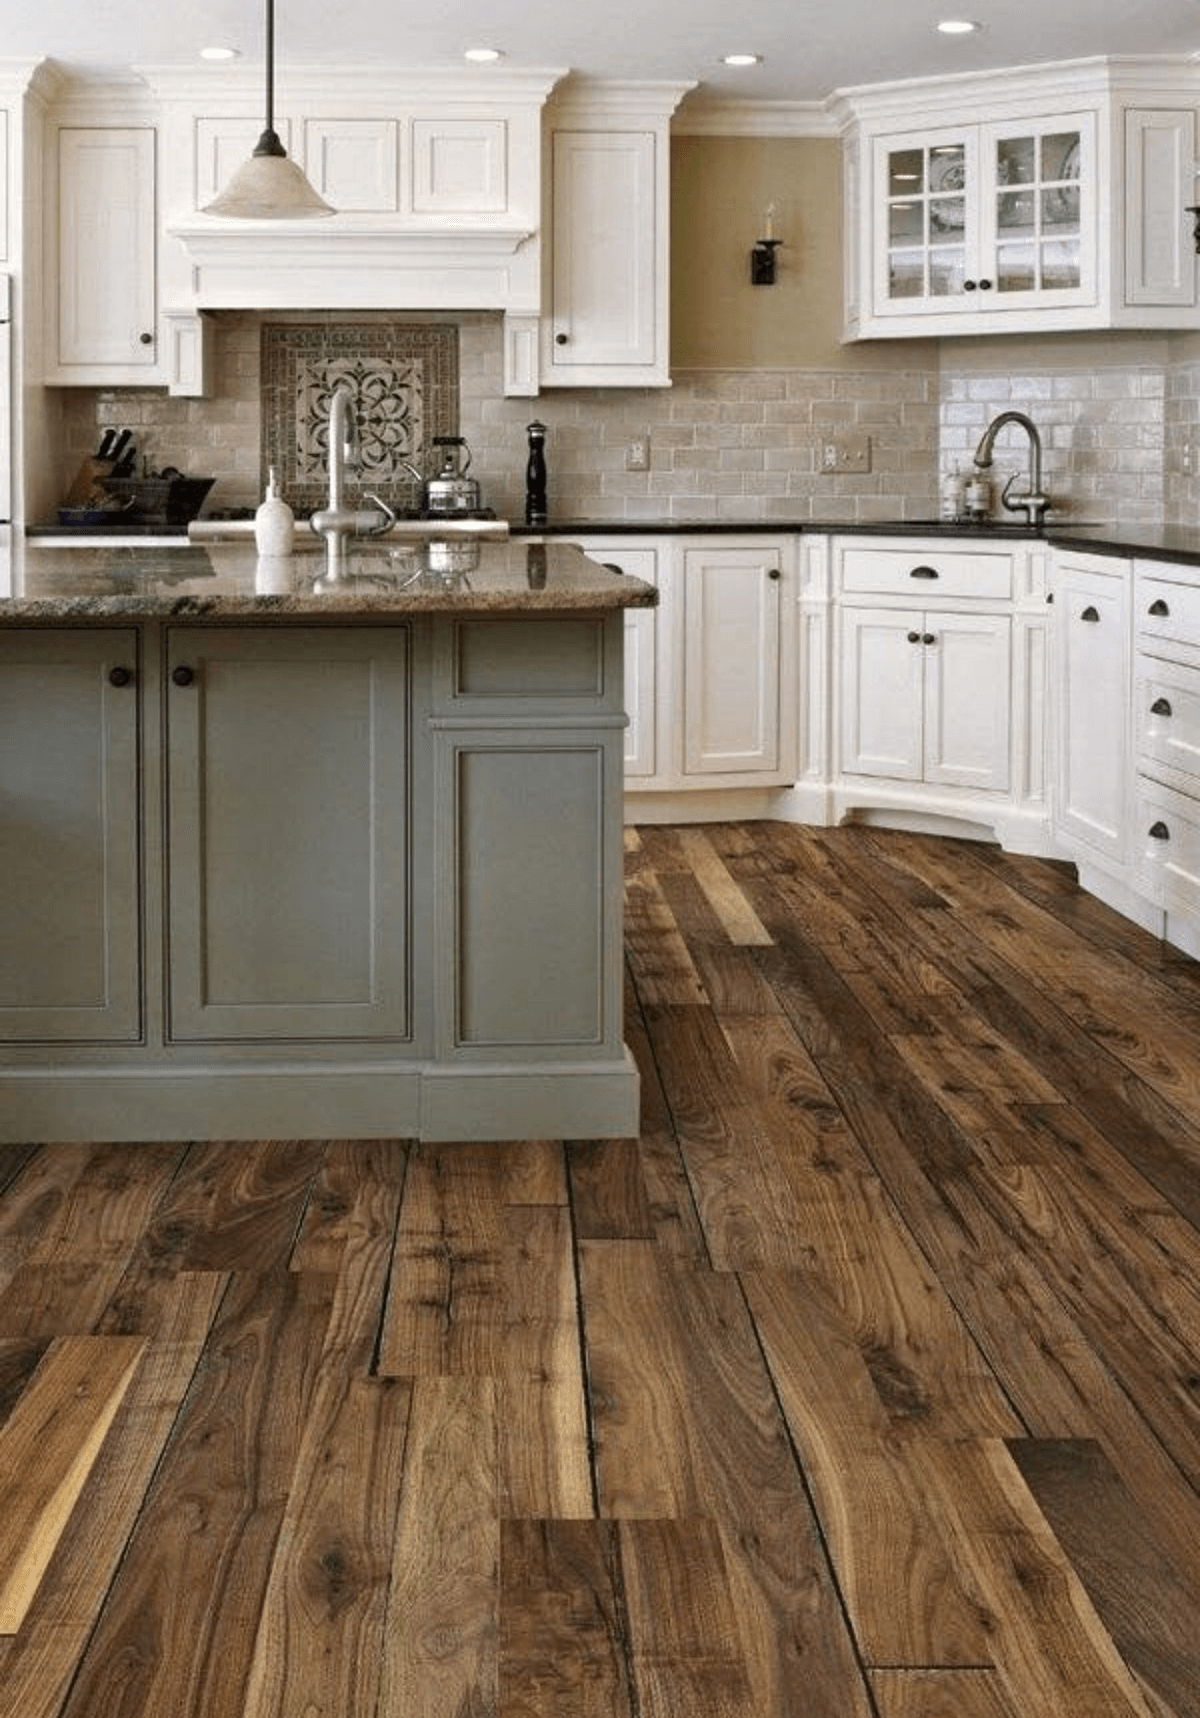 Flooring of parquet boards for kitchen contry stile for Country kitchen flooring